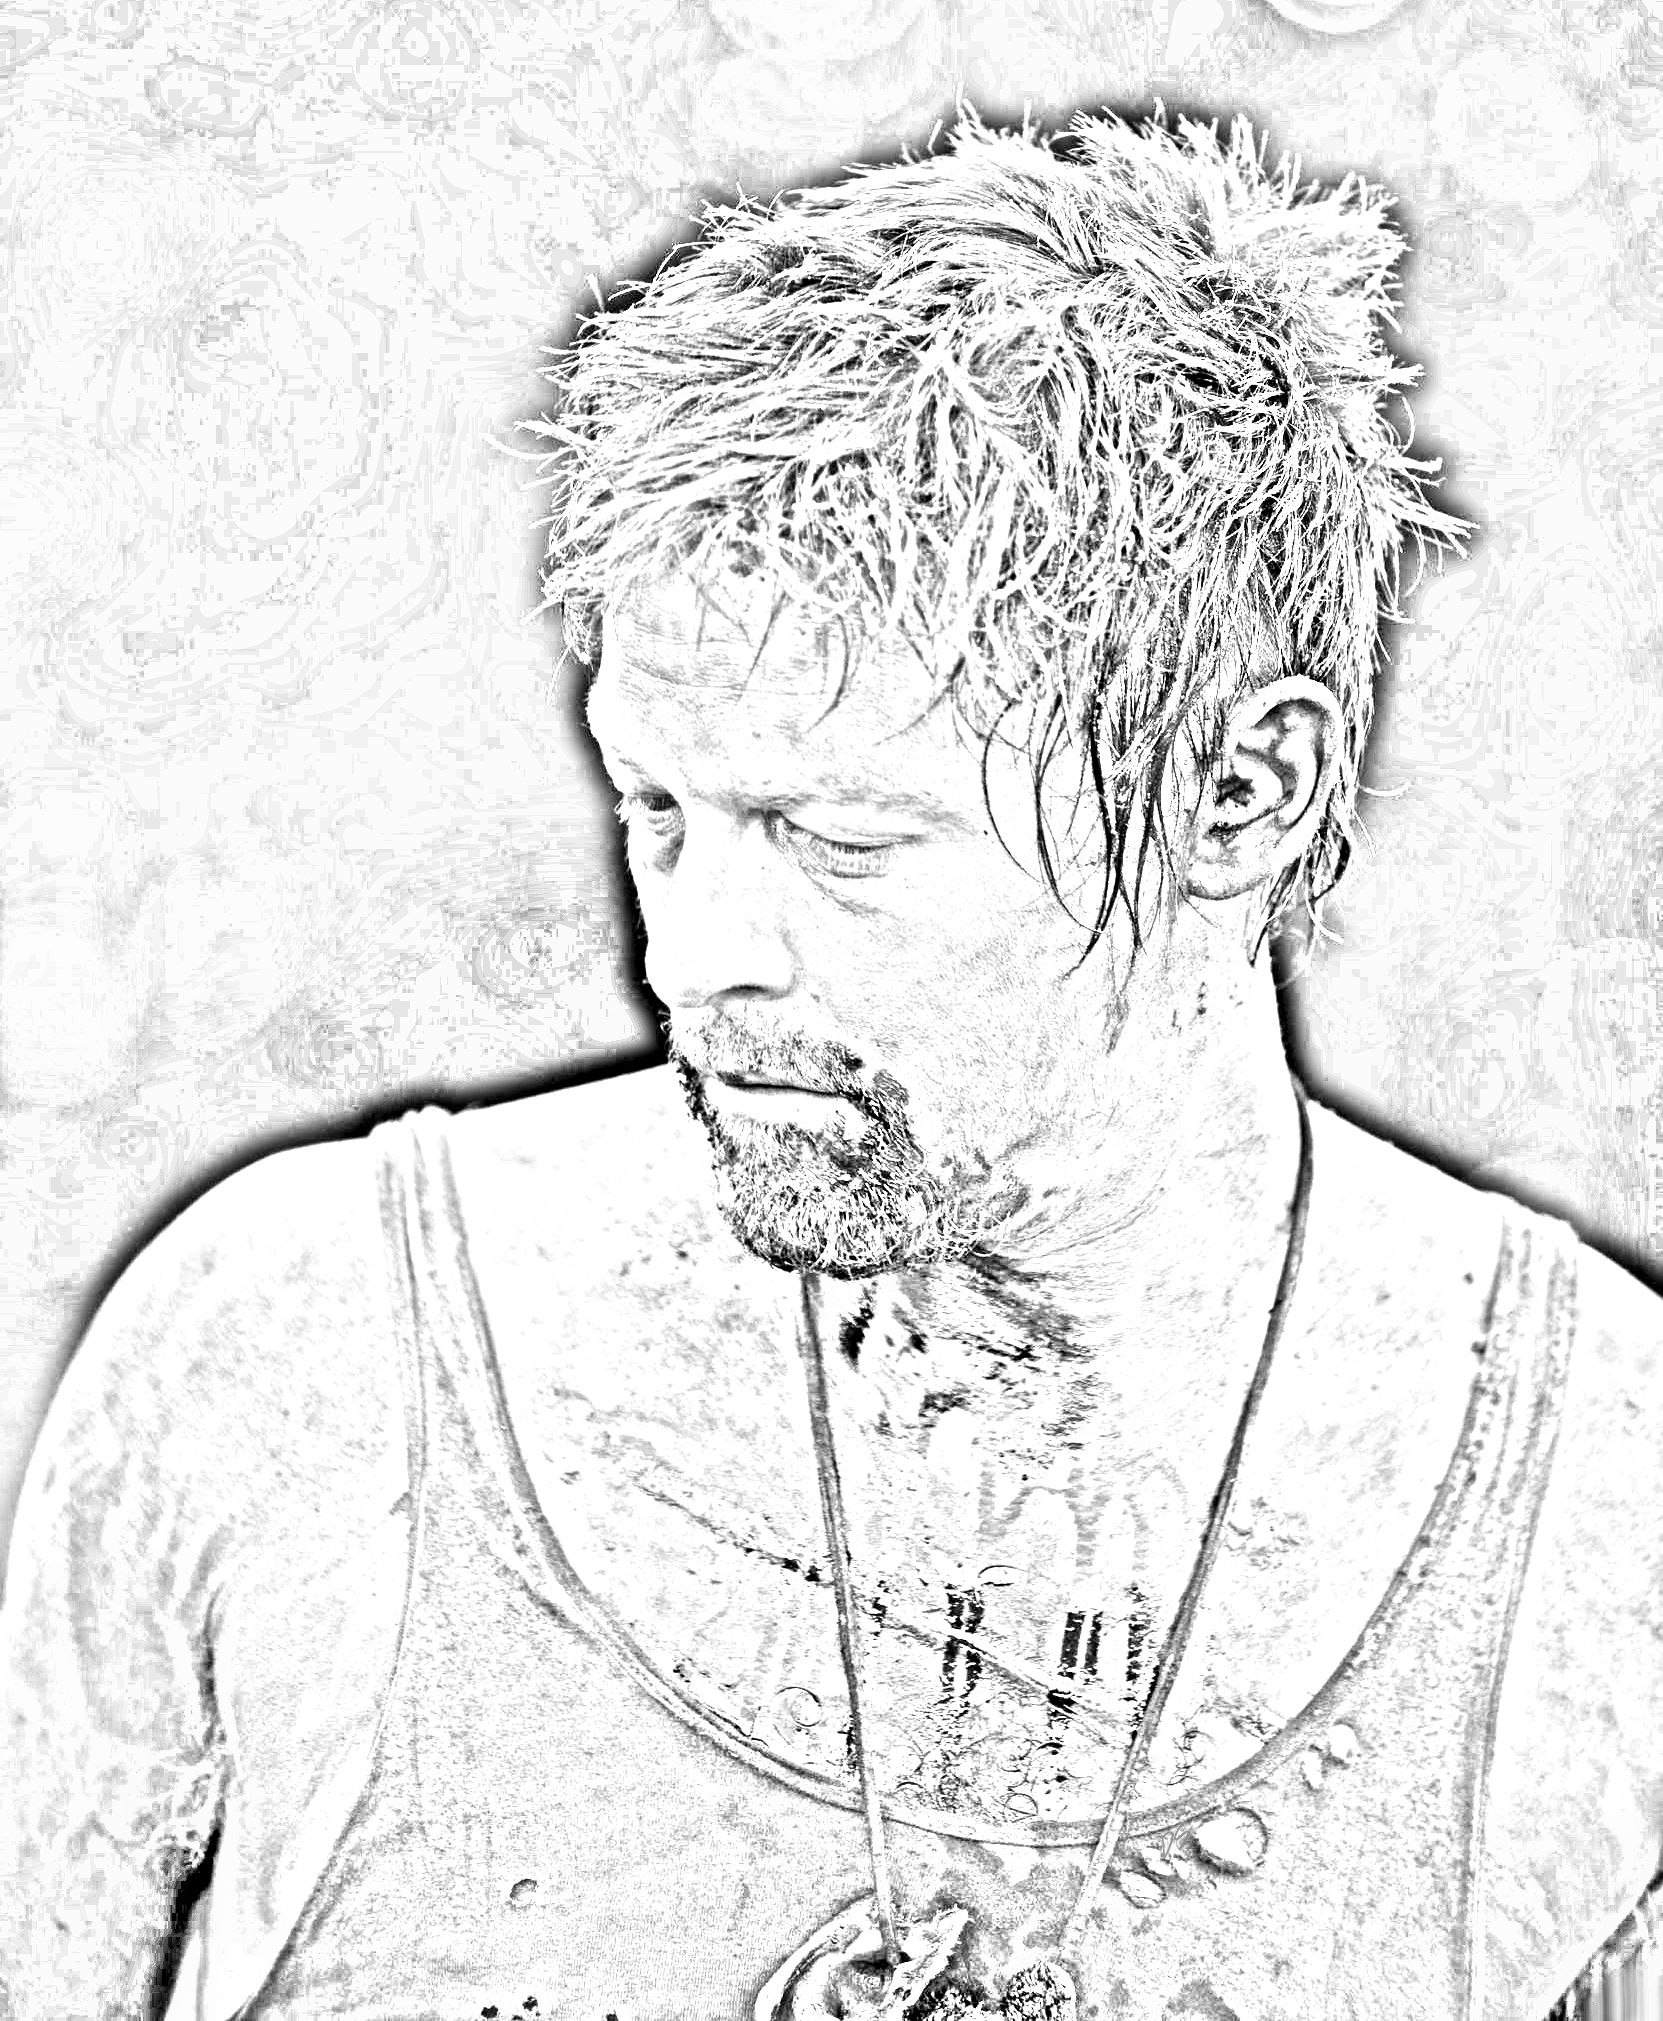 free walking dead coloring pages the walking dead coloring pages daryl walking dead coloring dead pages free walking